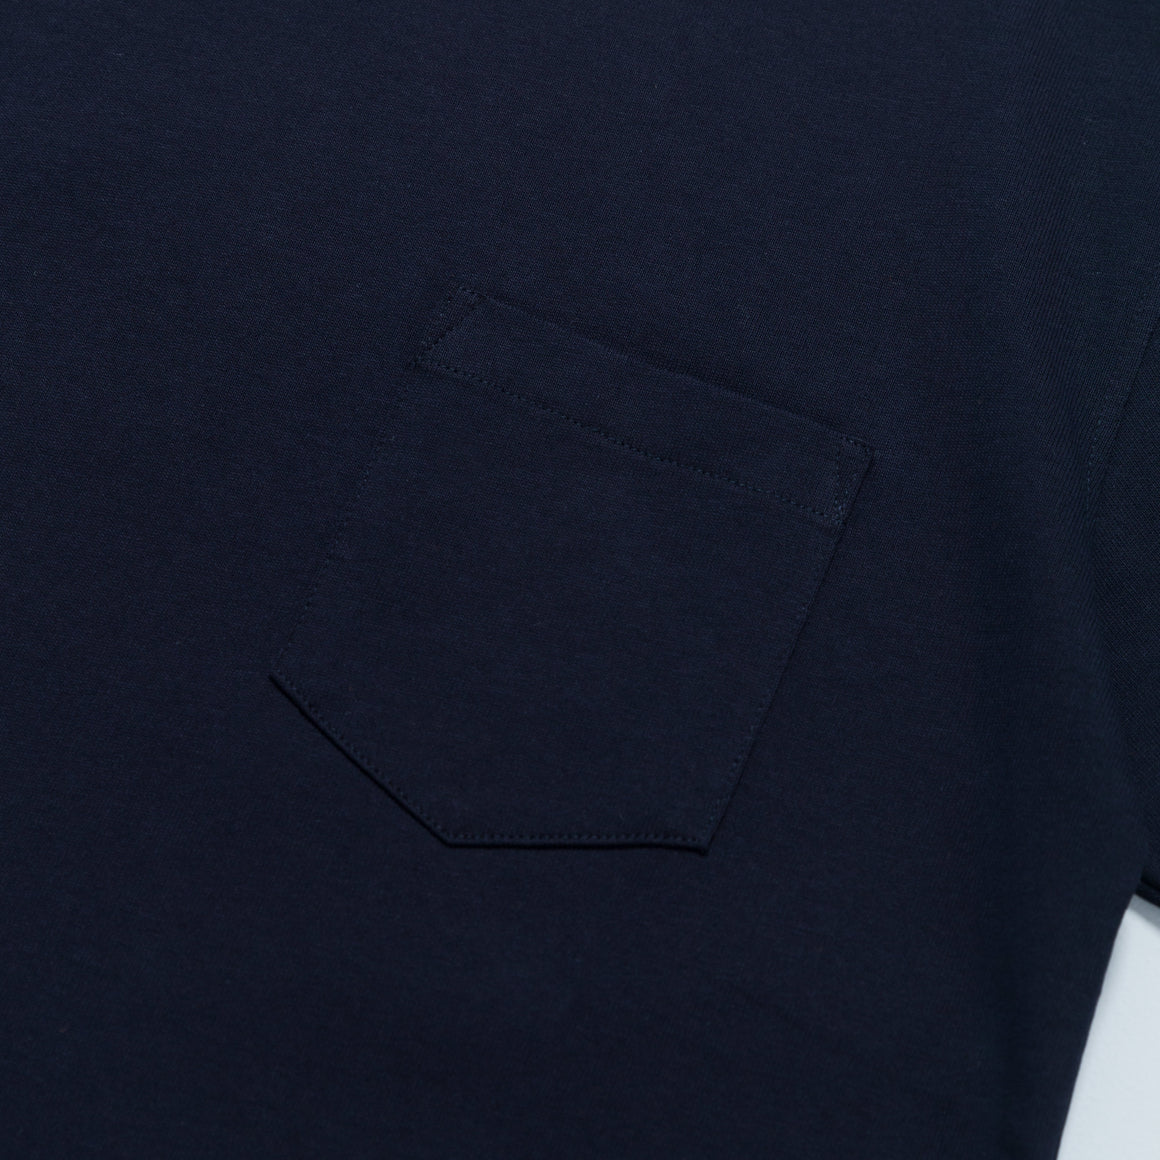 Johannes Pocket SS - Dark Navy - Up There